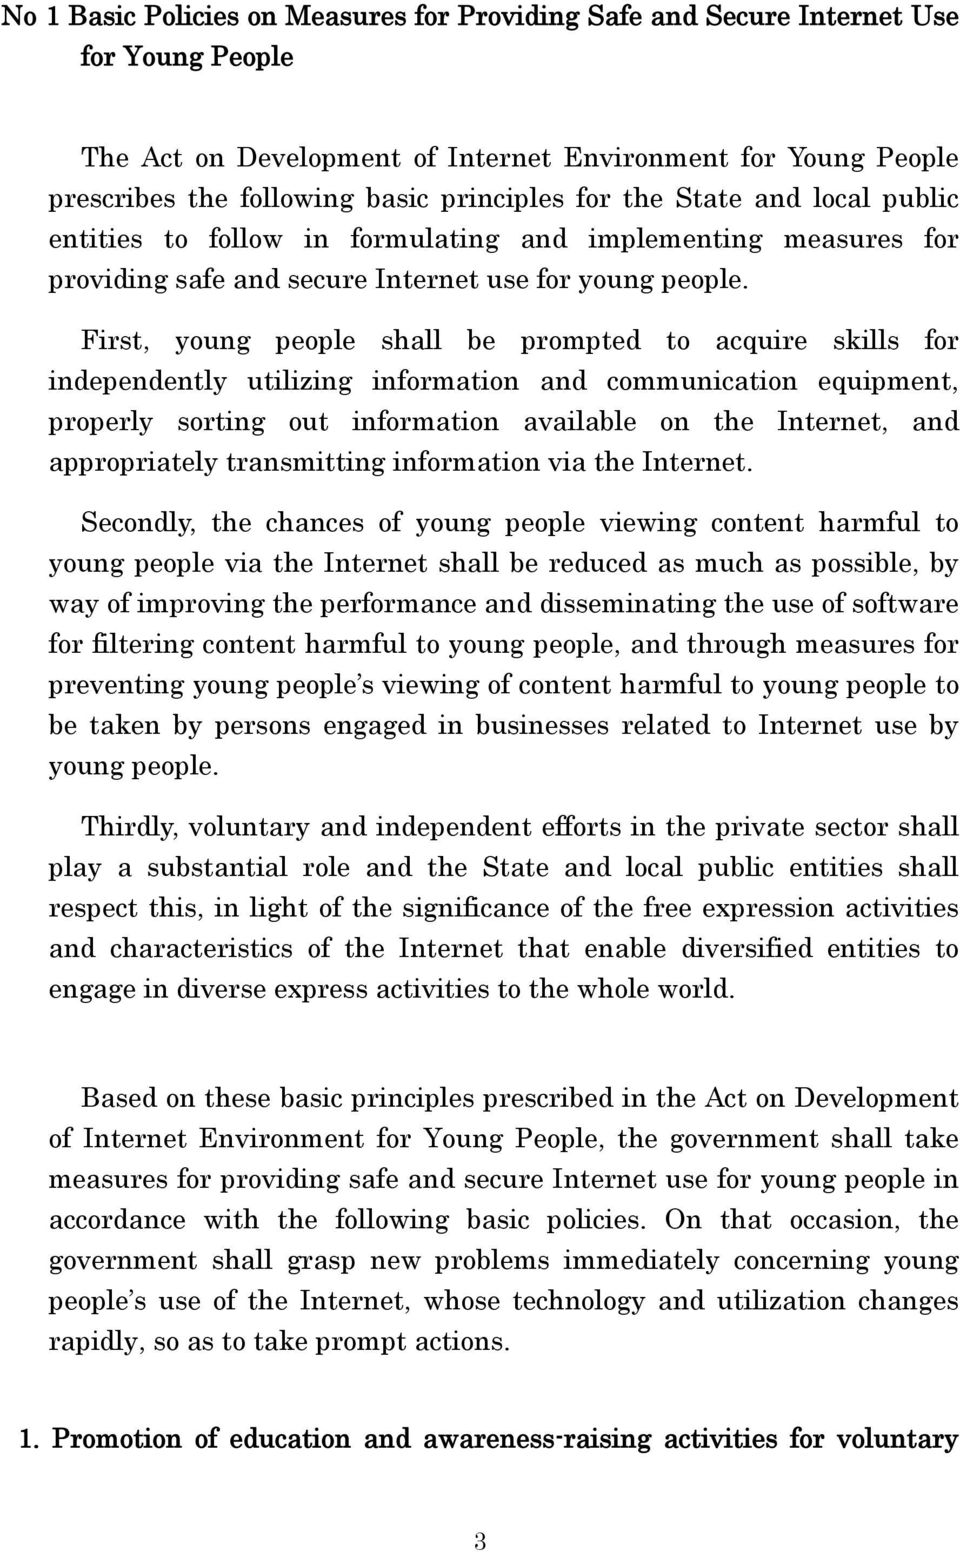 First, young people shall be prompted to acquire skills for independently utilizing information and communication equipment, properly sorting out information available on the Internet, and